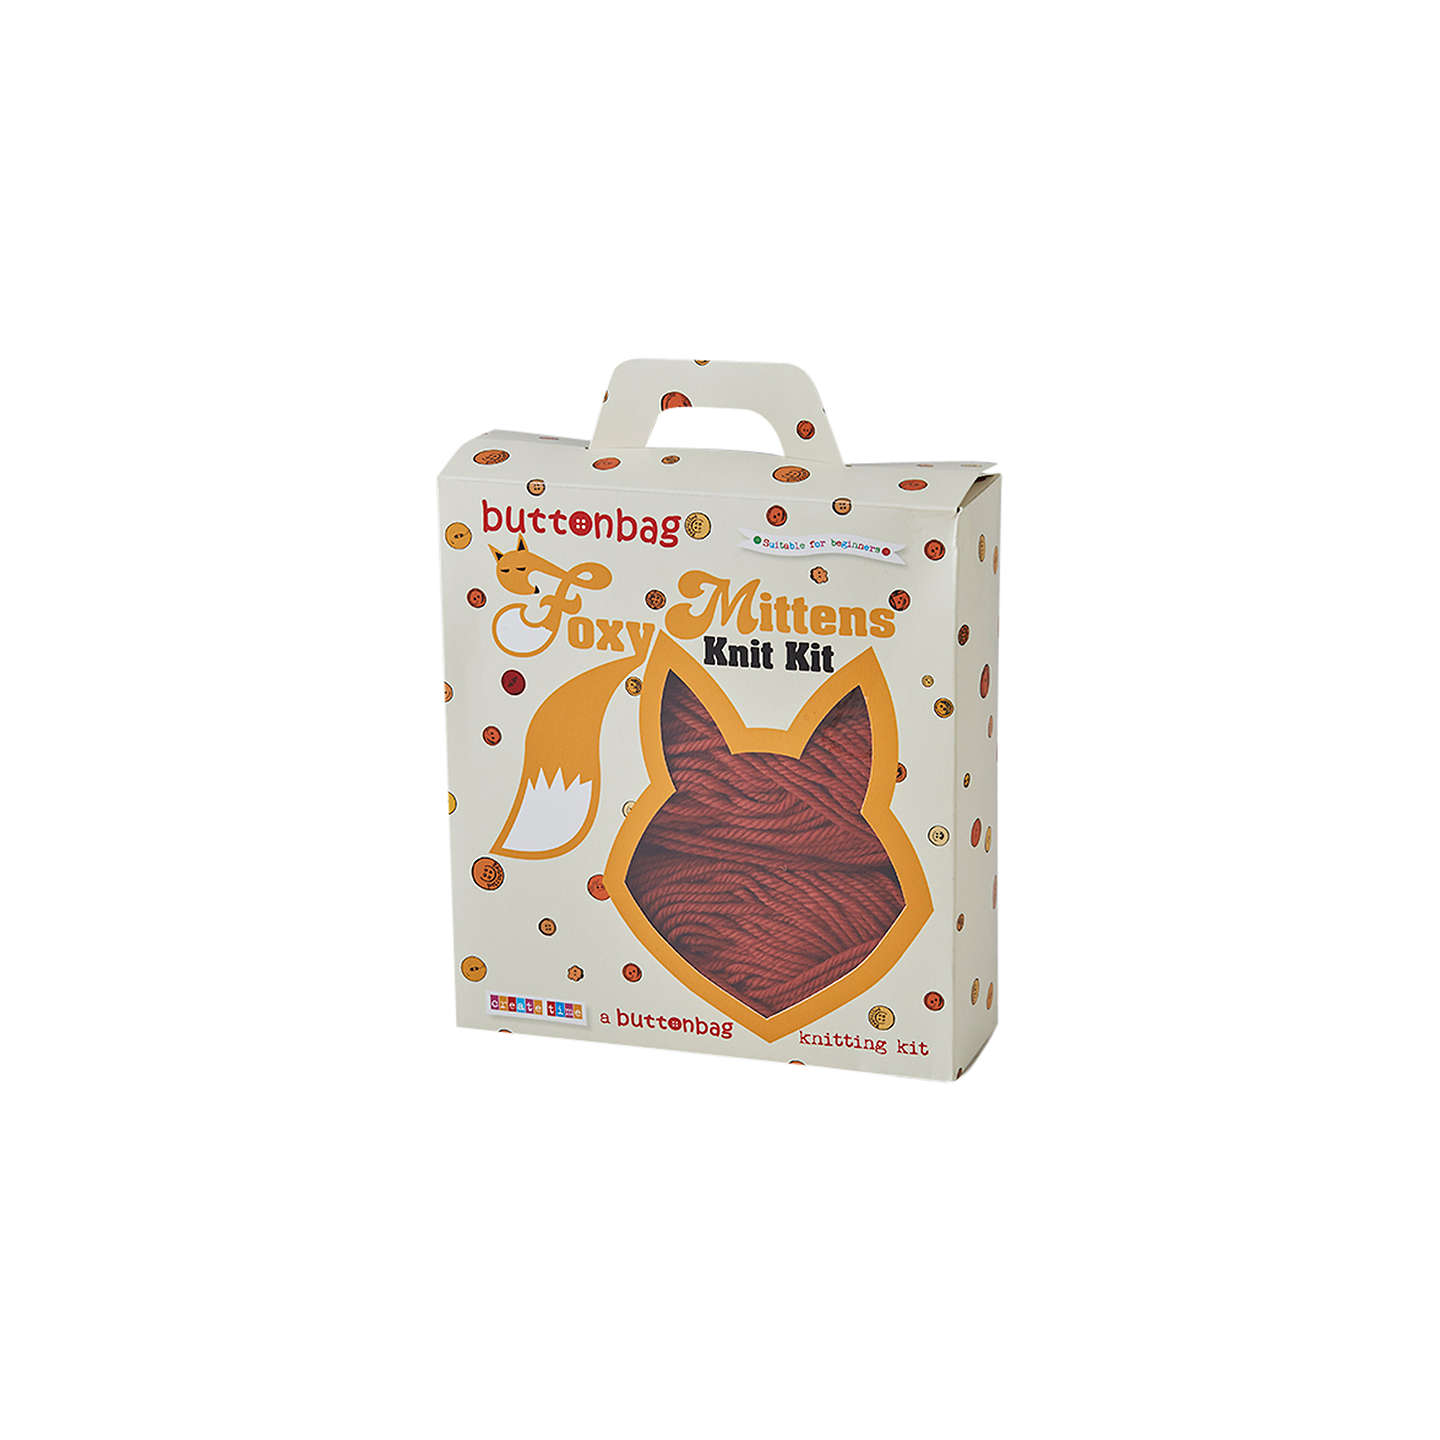 Buttonbag Make Your Own Foxy Mittens Knitting Kit at John Lewis